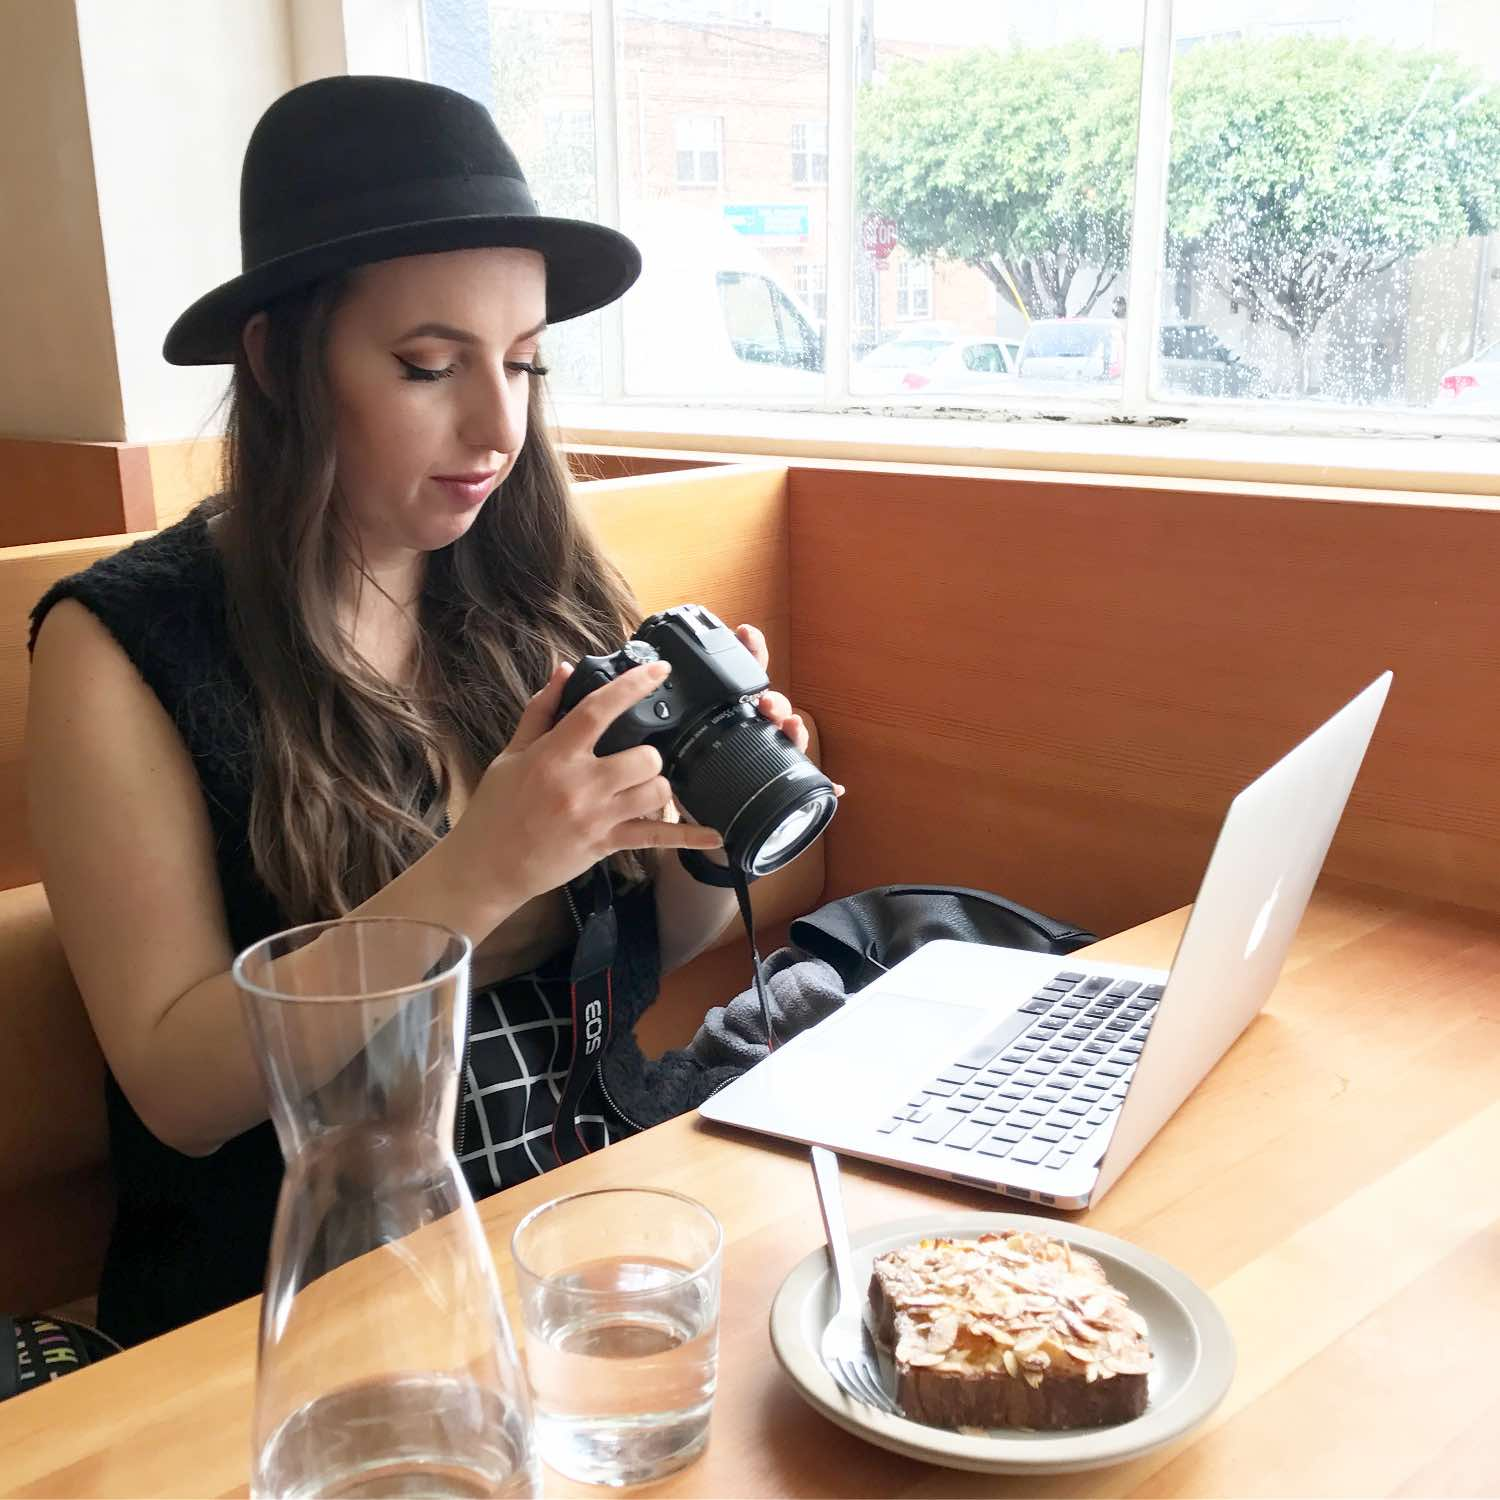 Must Have Tech for Travel - Blogger Approved DSLR & Tech Accessories